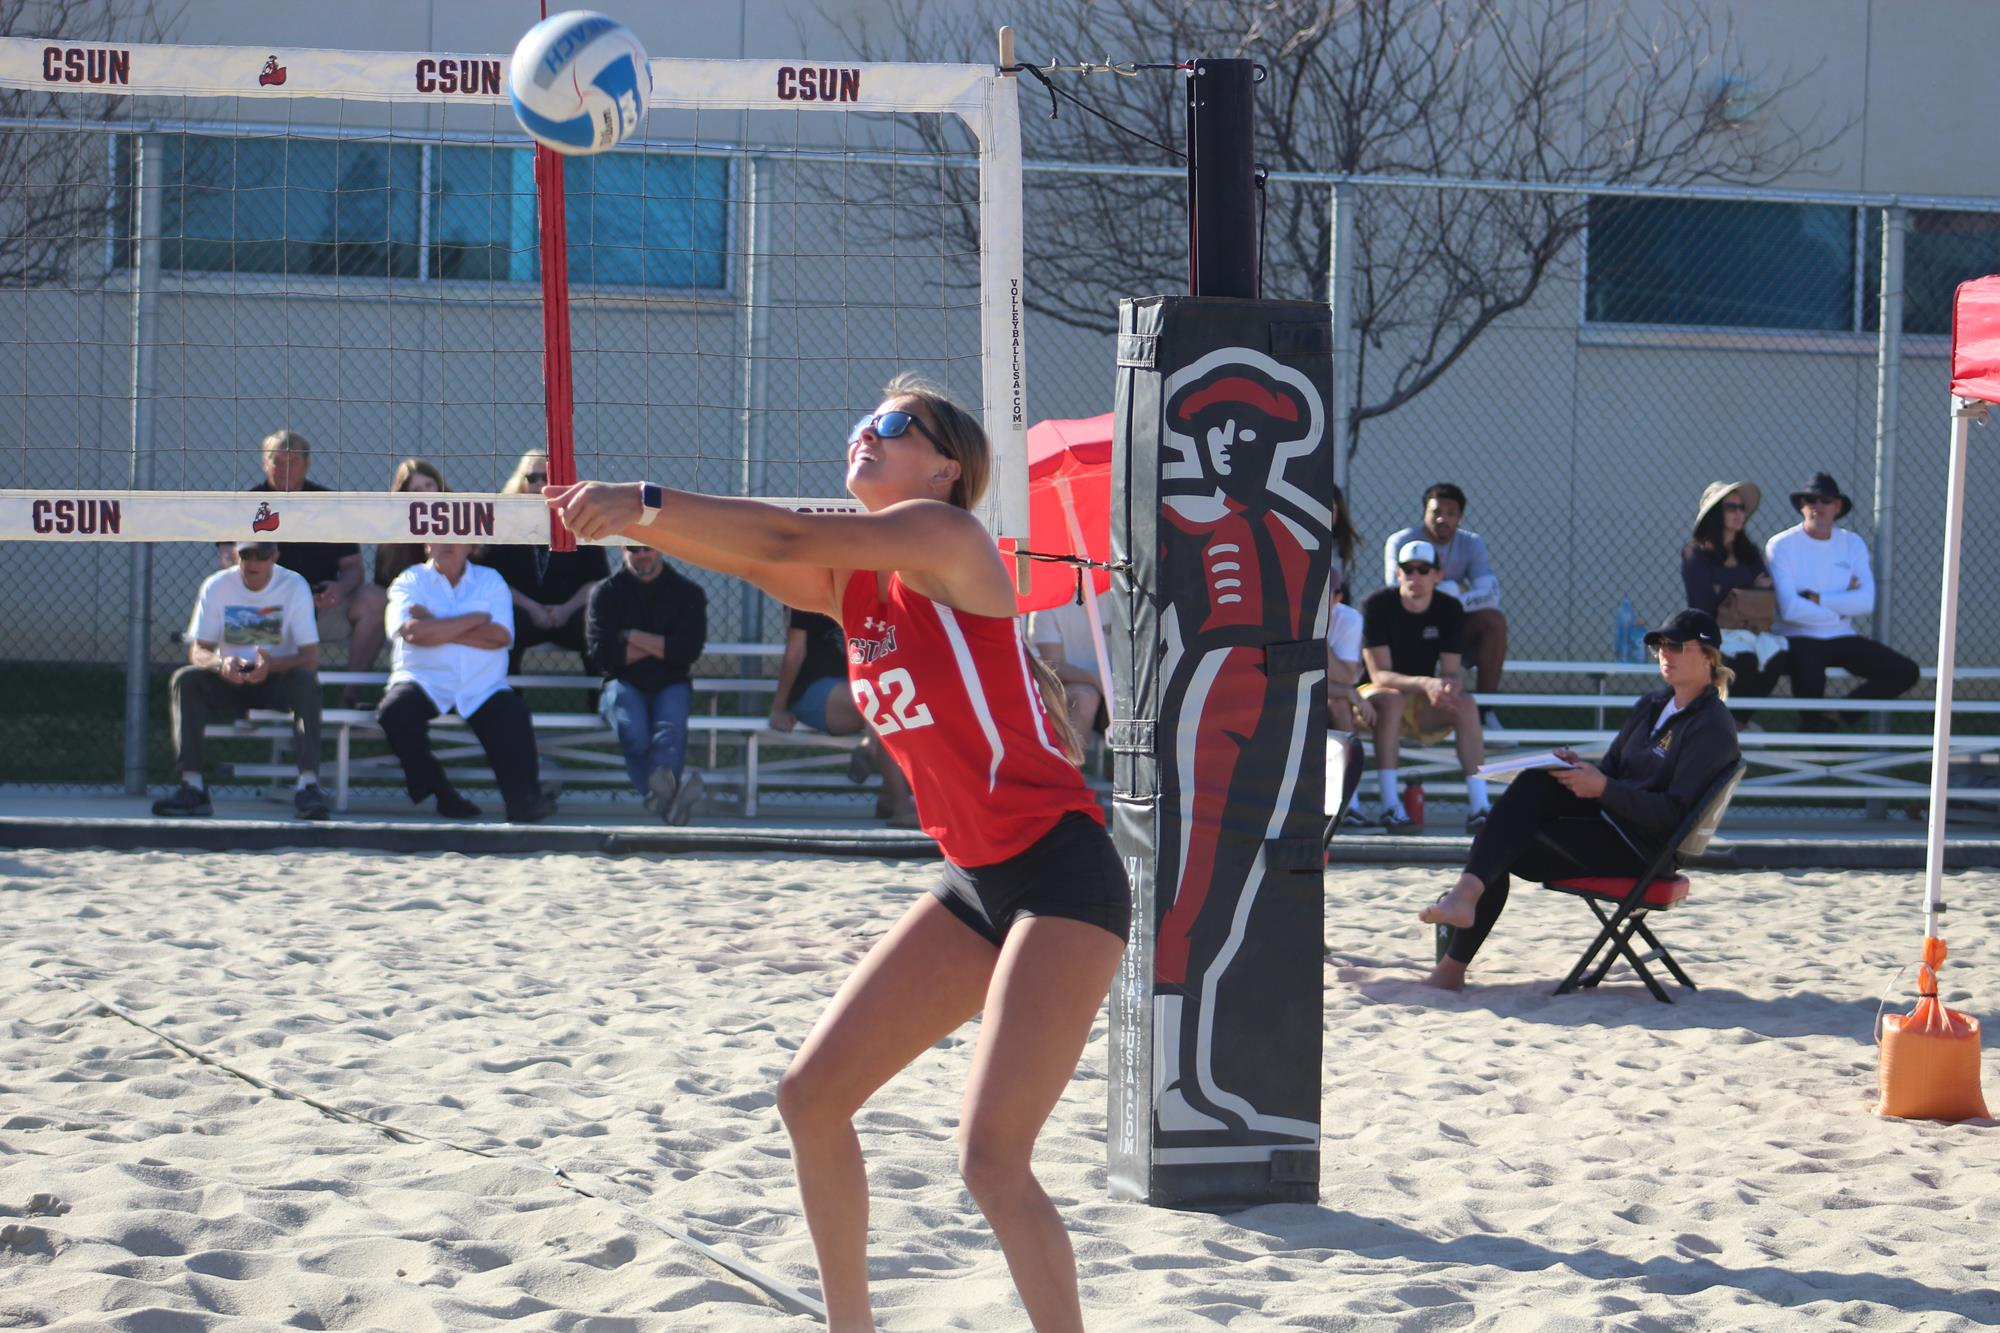 Mikaela Maughan 2021 Beach Volleyball Csun Athletics